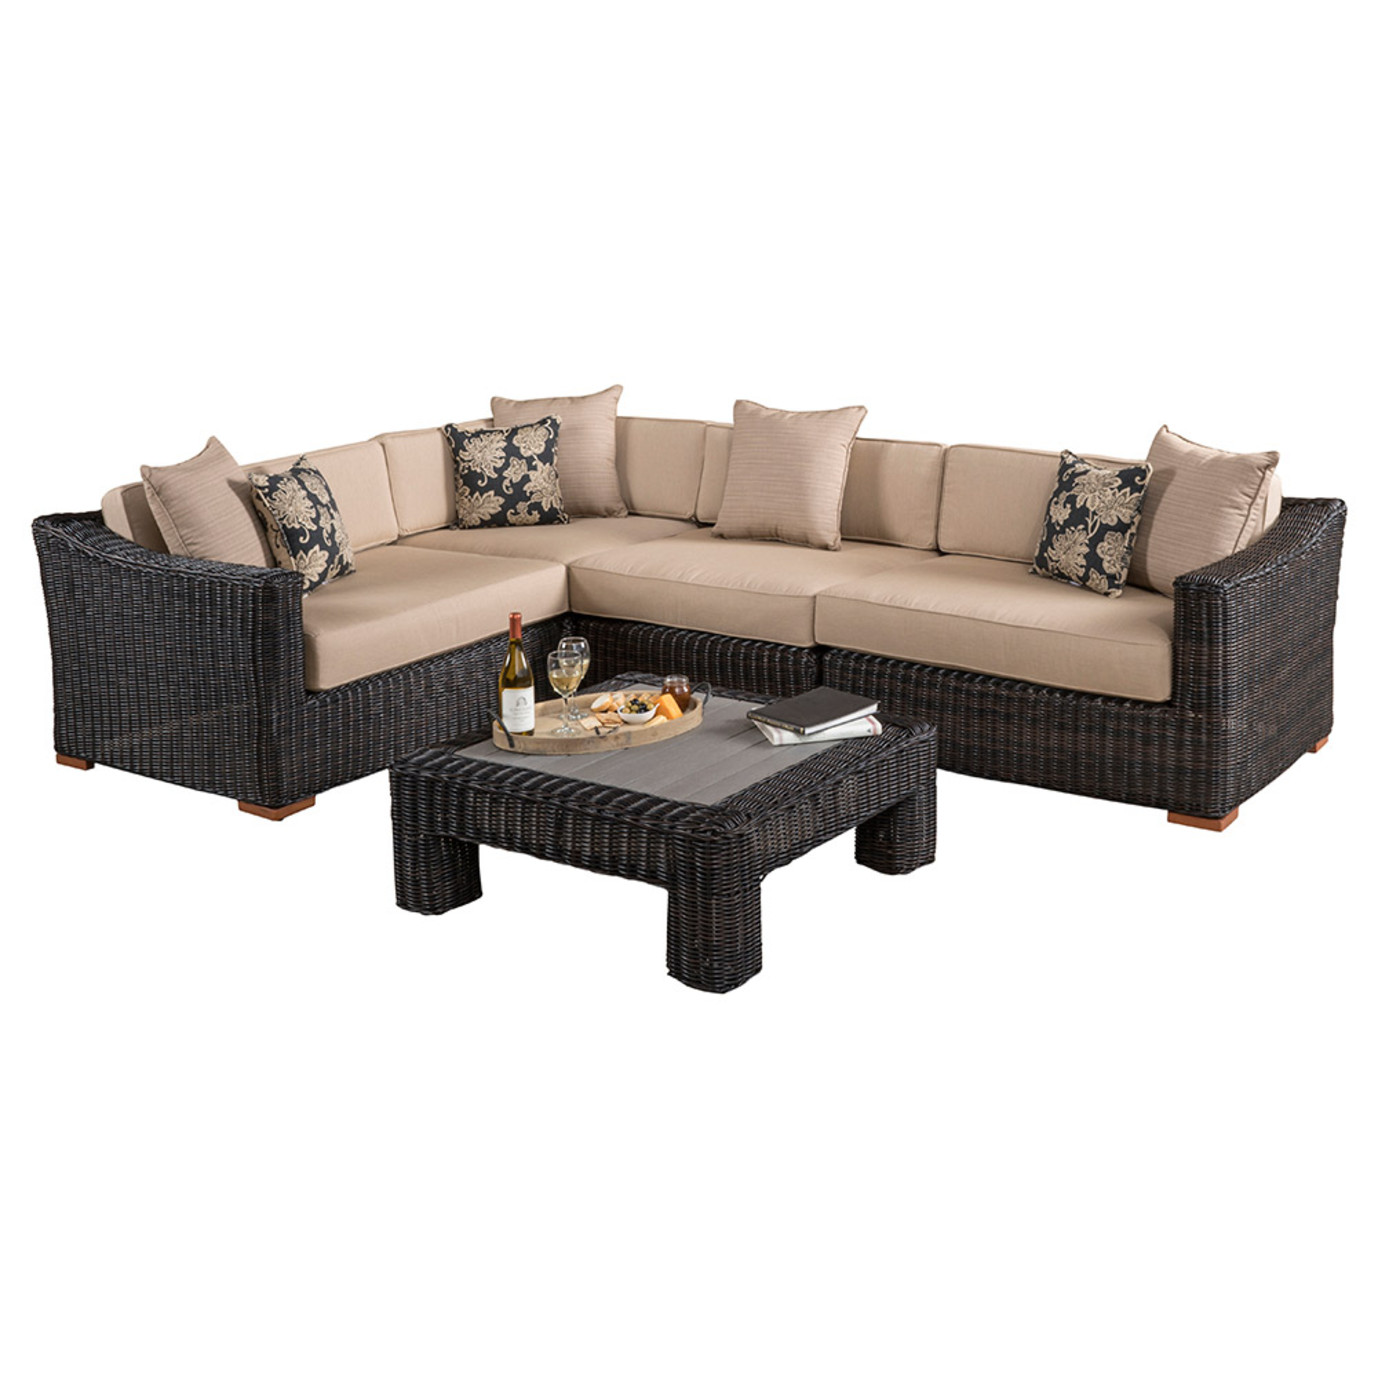 Resort™ 5pc Sectional & Table Set - Espresso/Heather Beige